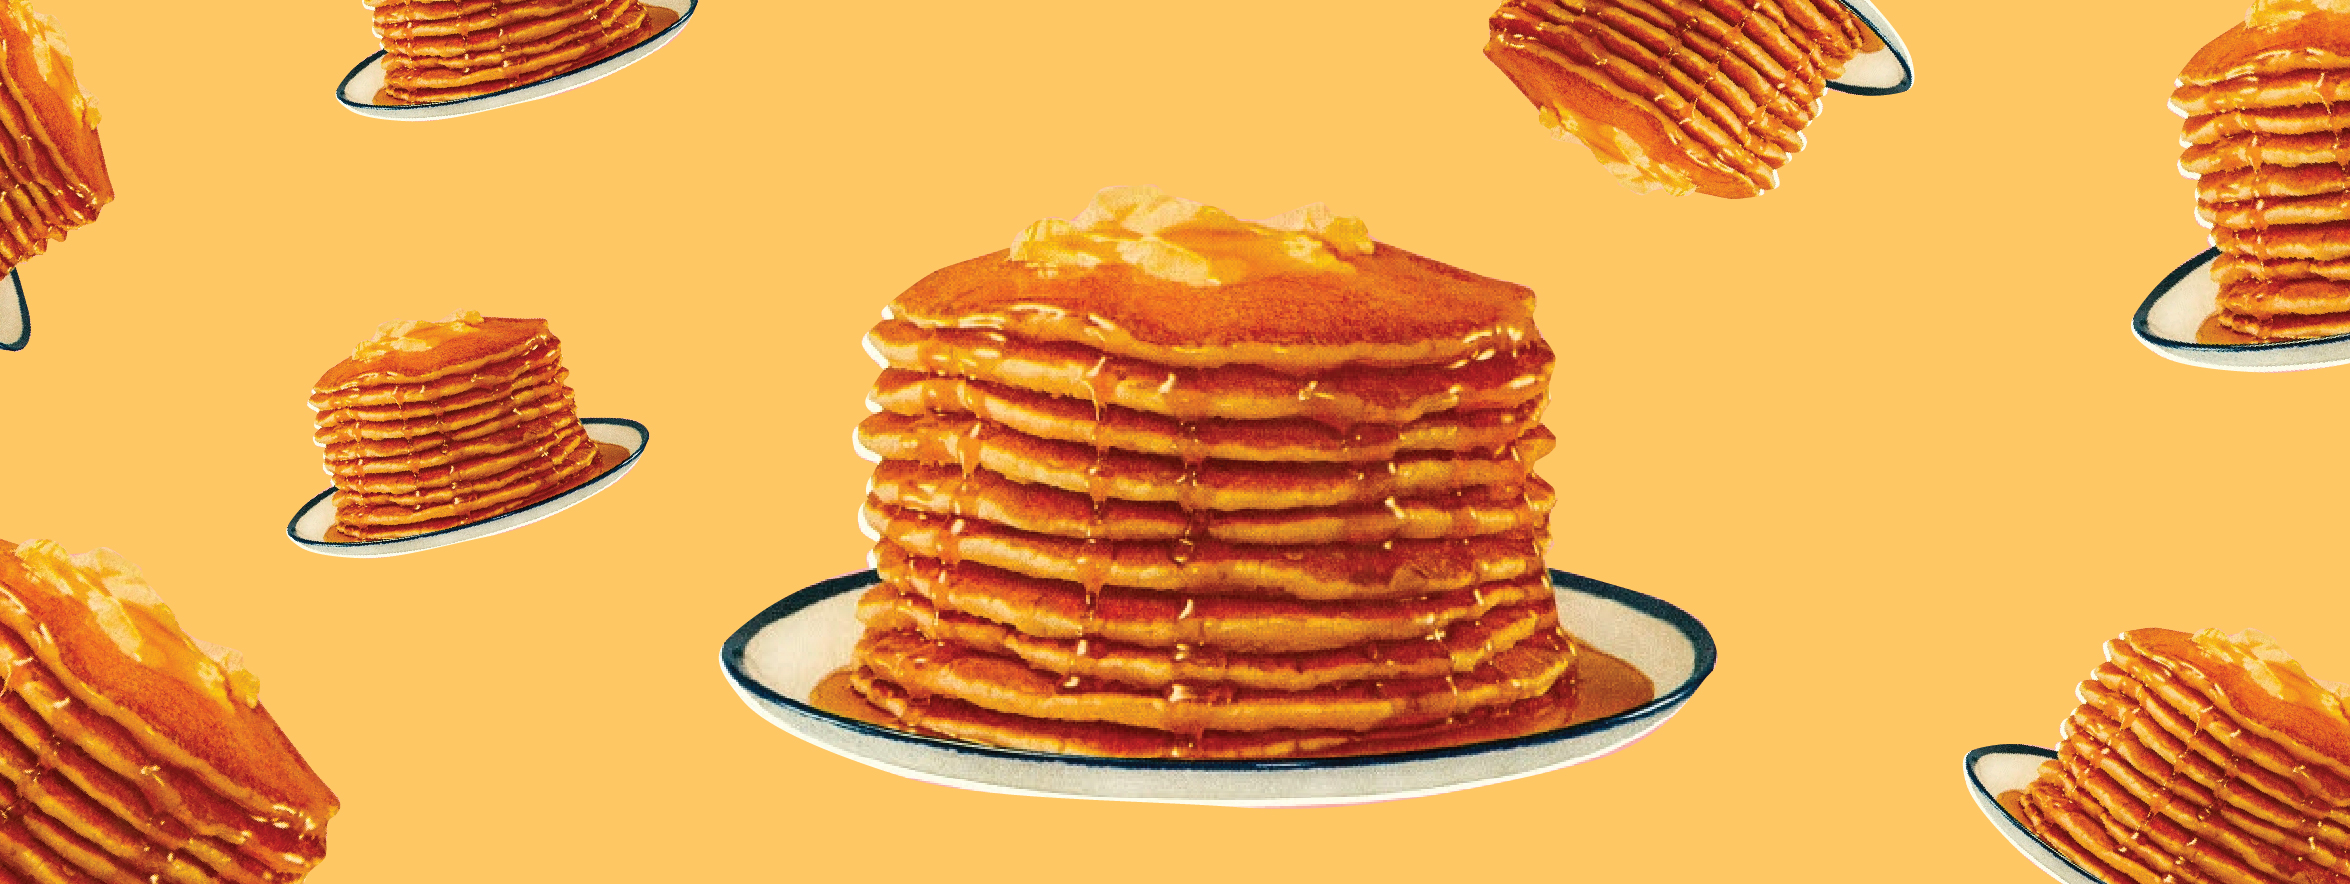 nationalpancakeday_mailchimp-01.jpg